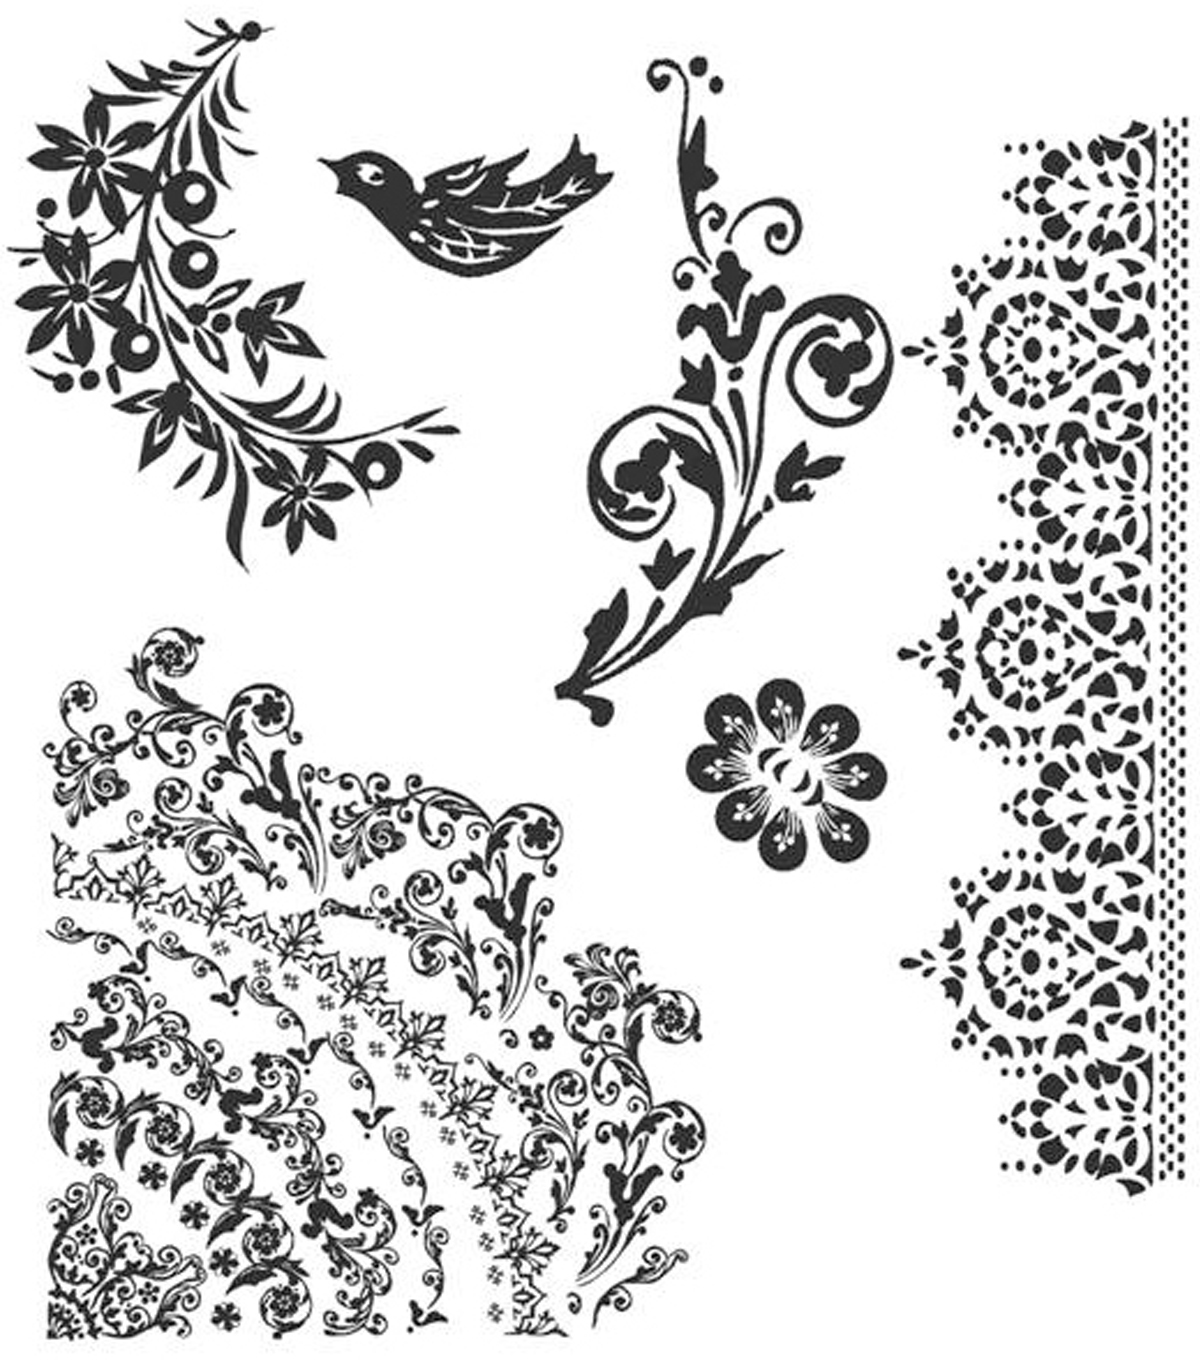 Tim Holtz Cling Rubber Stamp Set-Floral Tattoo